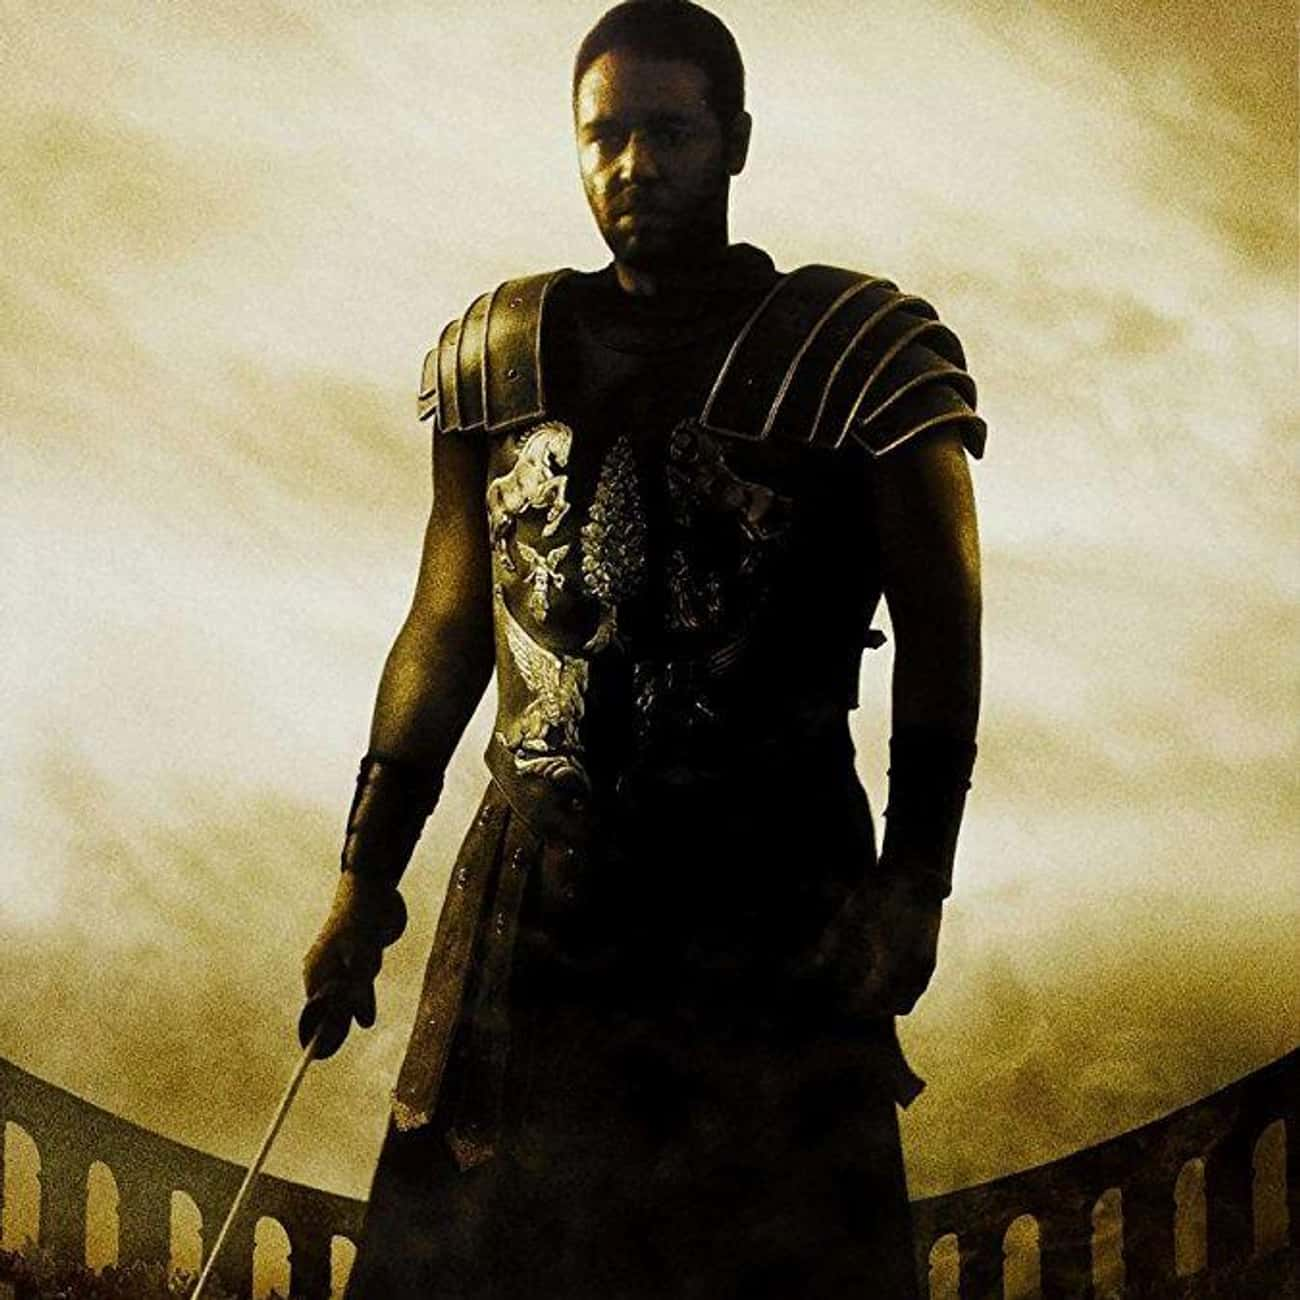 Gladiator is listed (or ranked) 4 on the list What to Watch If You Love Game of Thrones